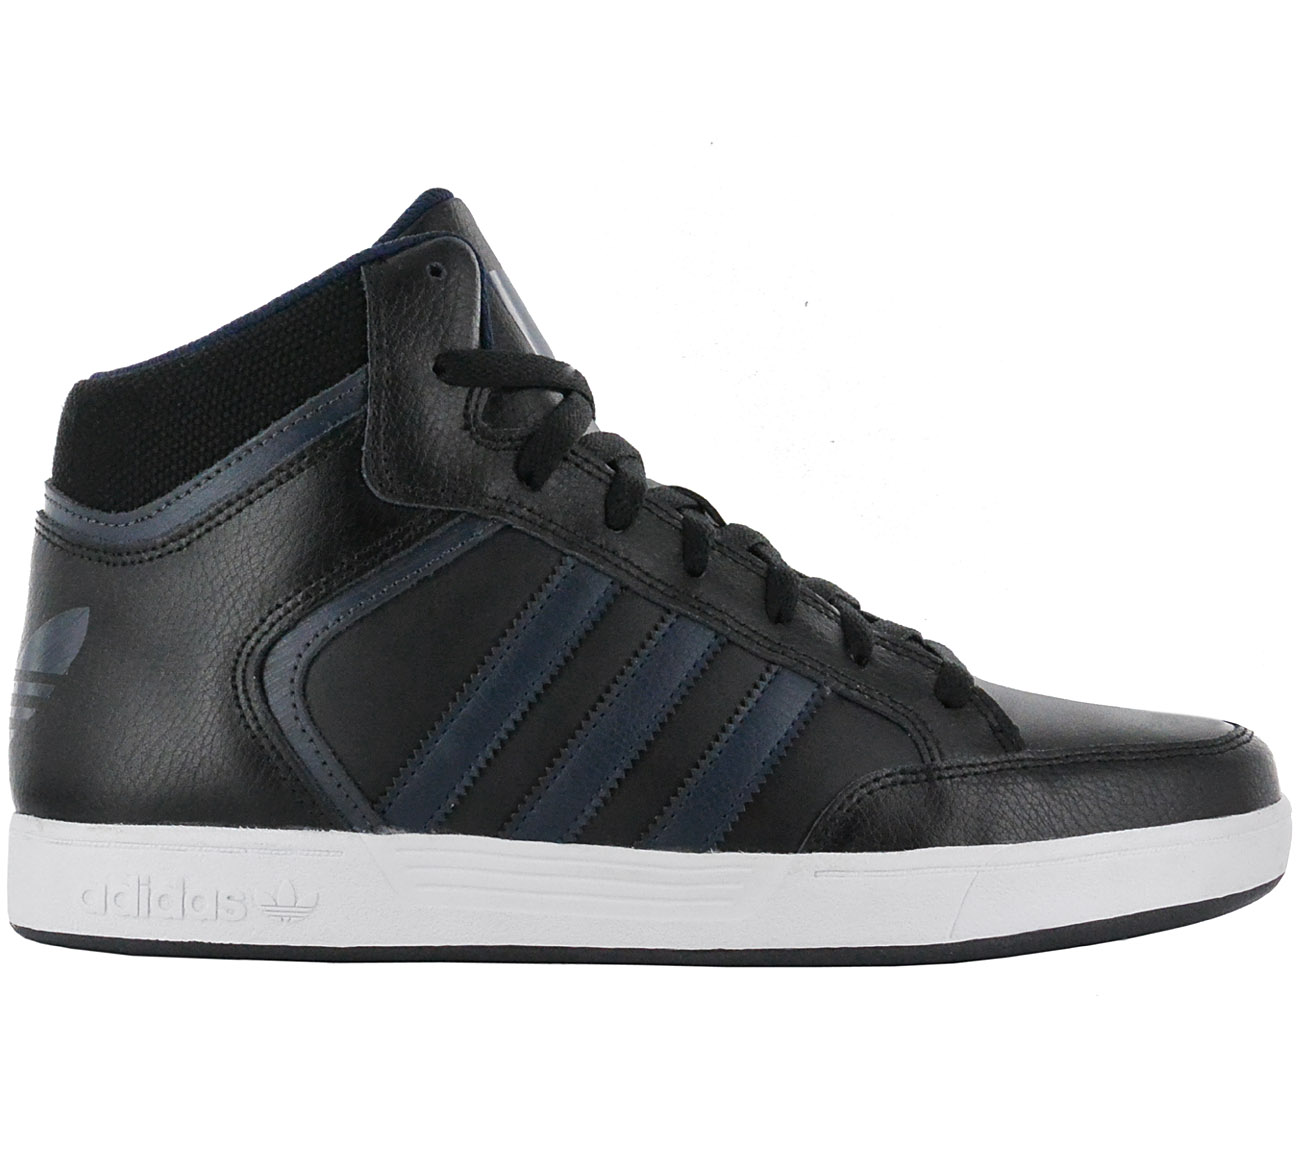 100% authentic f24a9 074d9 Adidas Originals Varial mid Men s Sneakers Shoes Leather Black ...